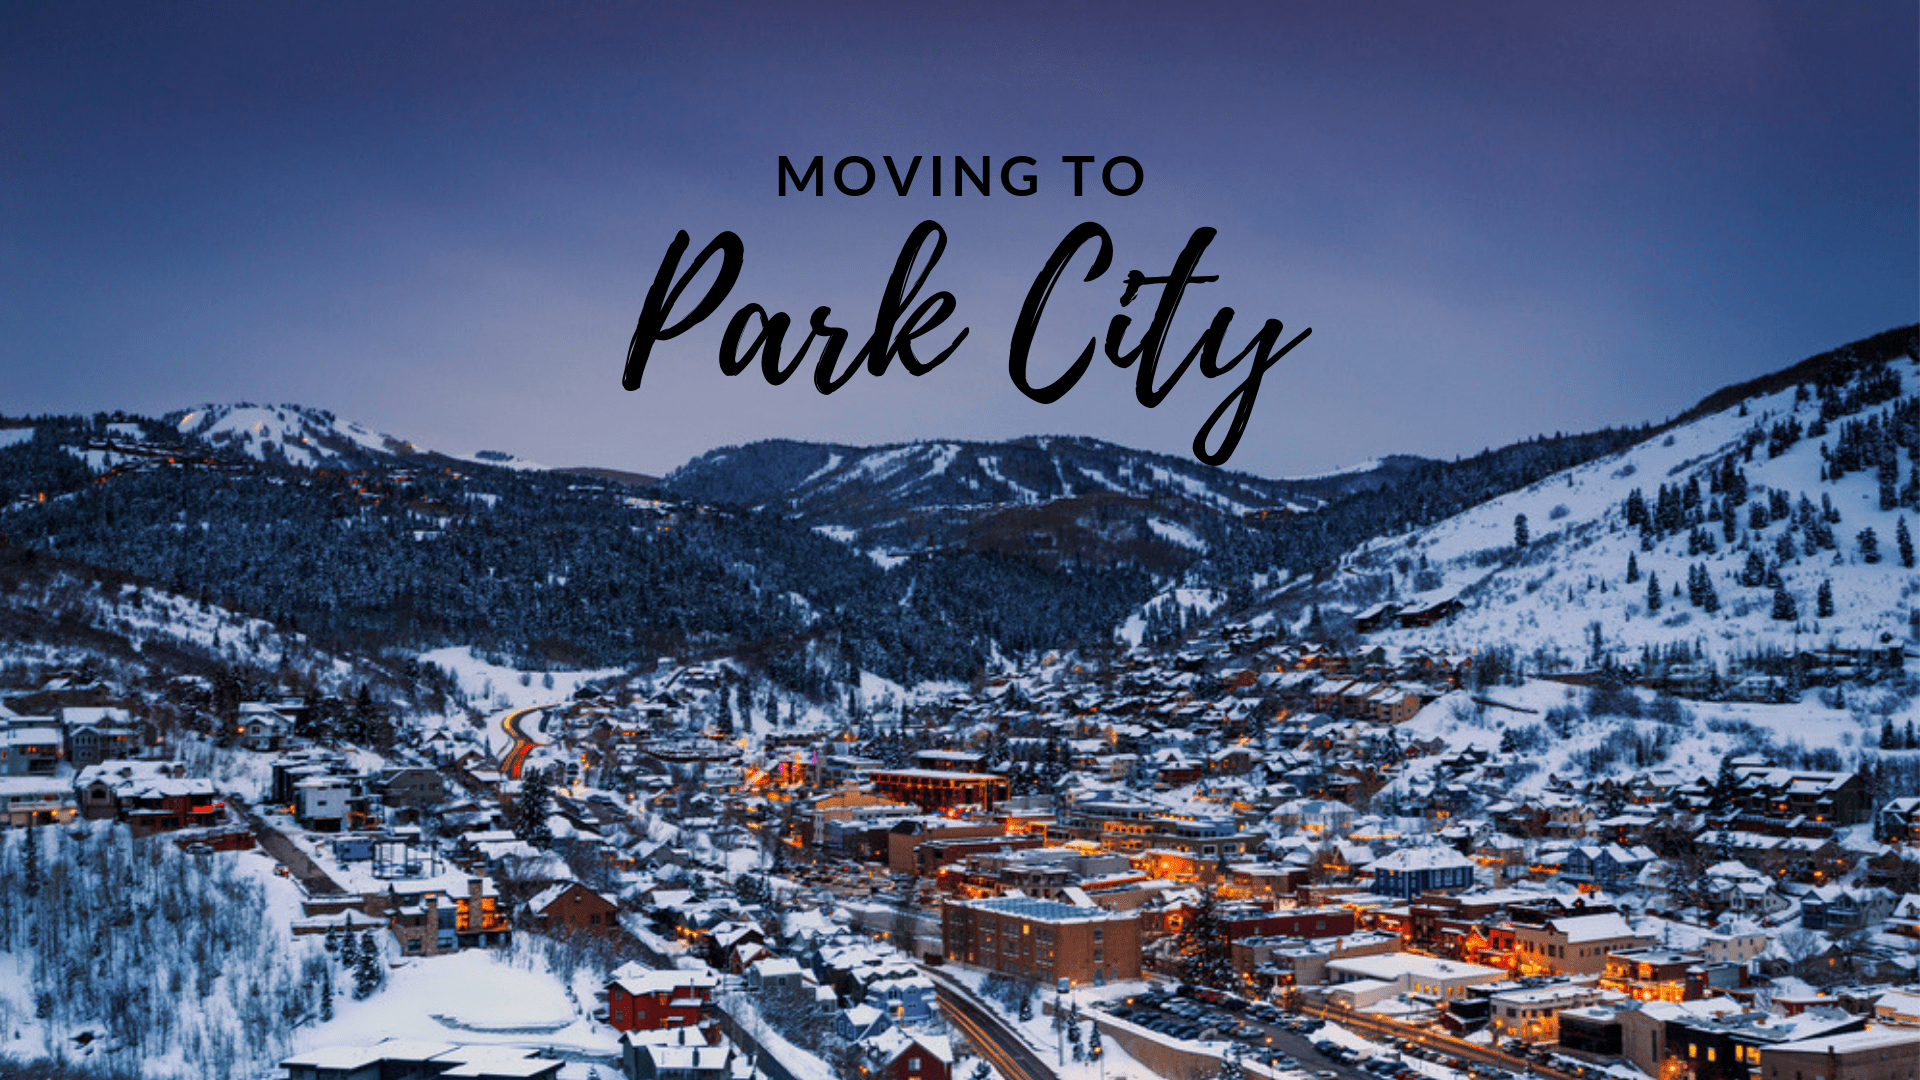 Moving to Park City